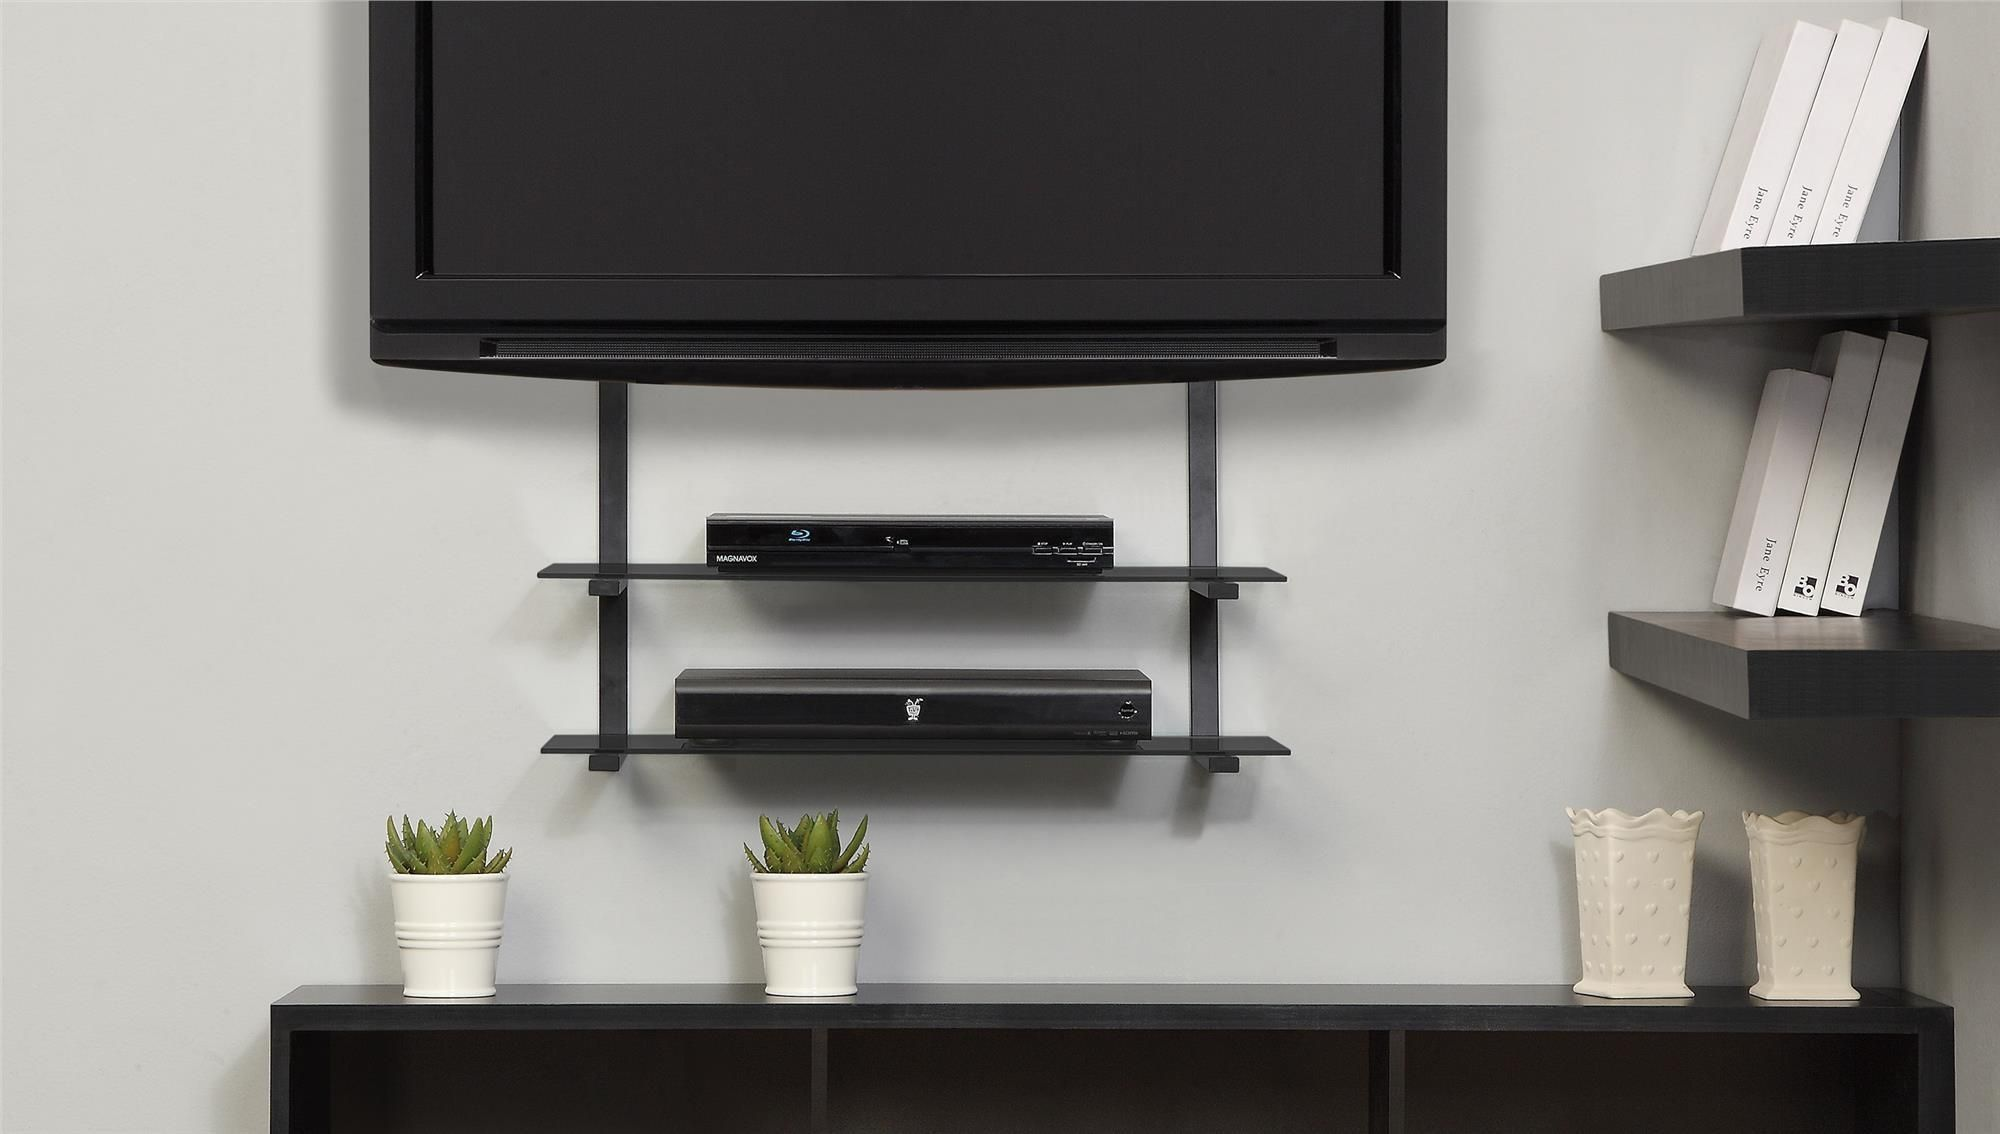 Tv Swivel Wall Mount With Shelf For Cable Box Wall Mounted Tv